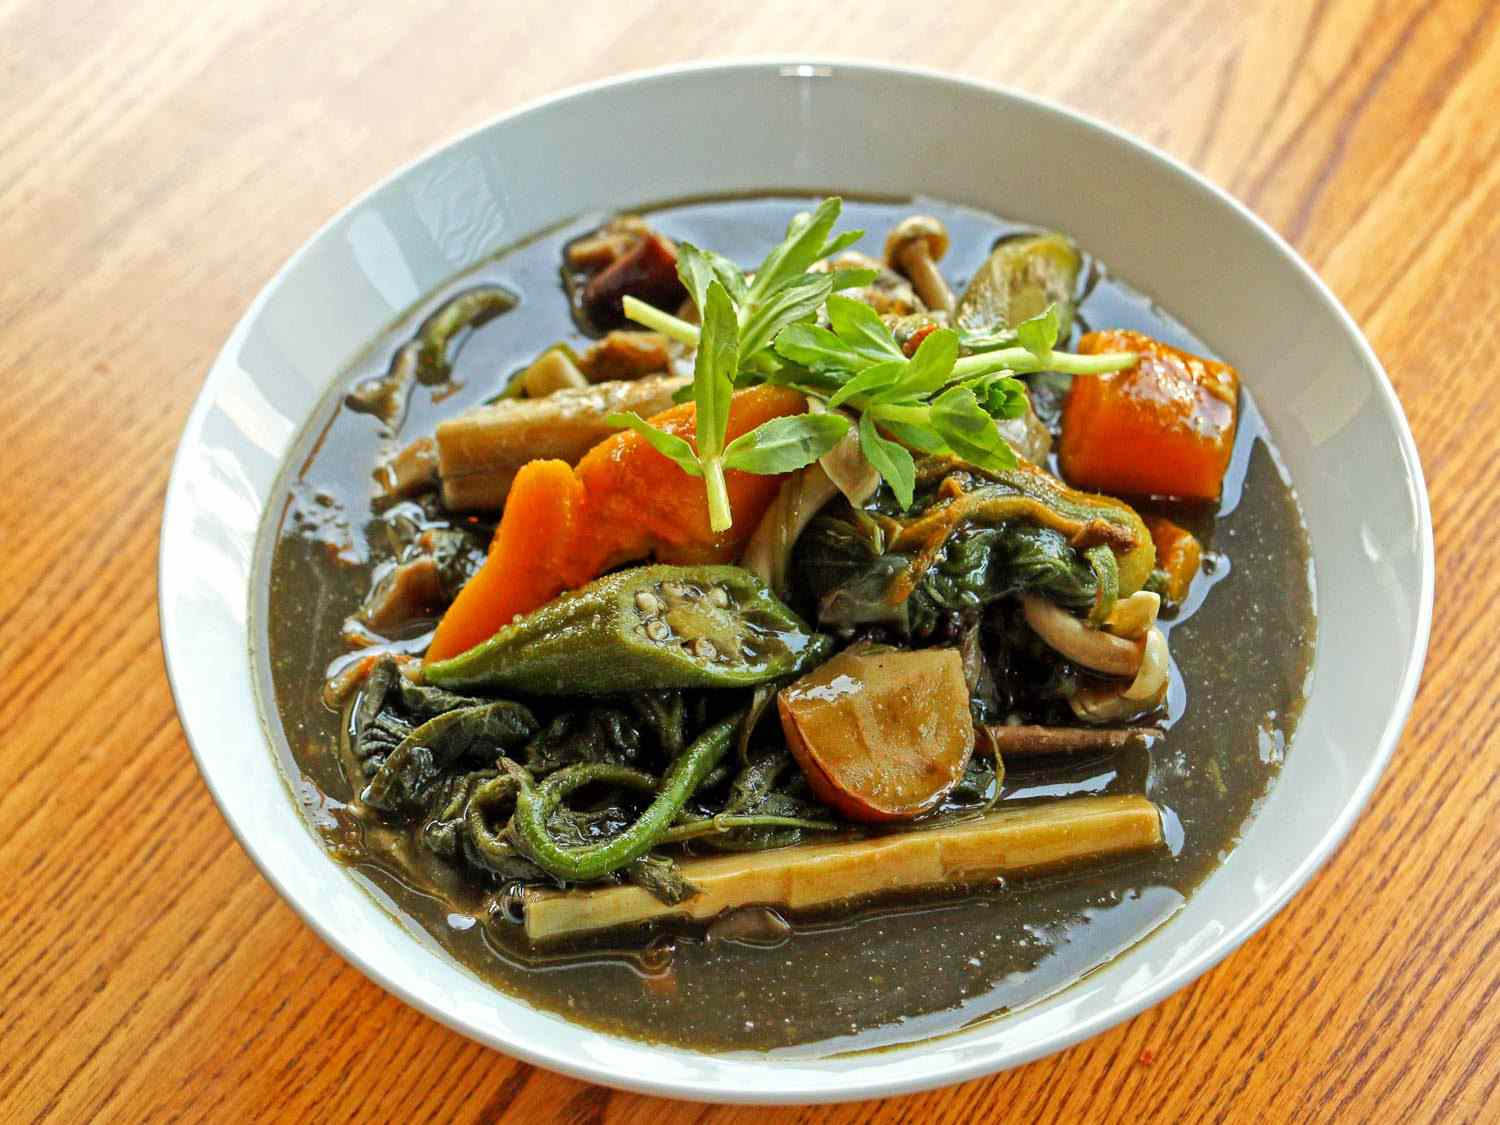 A bowl of gaeng naw mai: a dark-green broth with bamboo shoots, green yanang leaves, and other vegetables and herbs